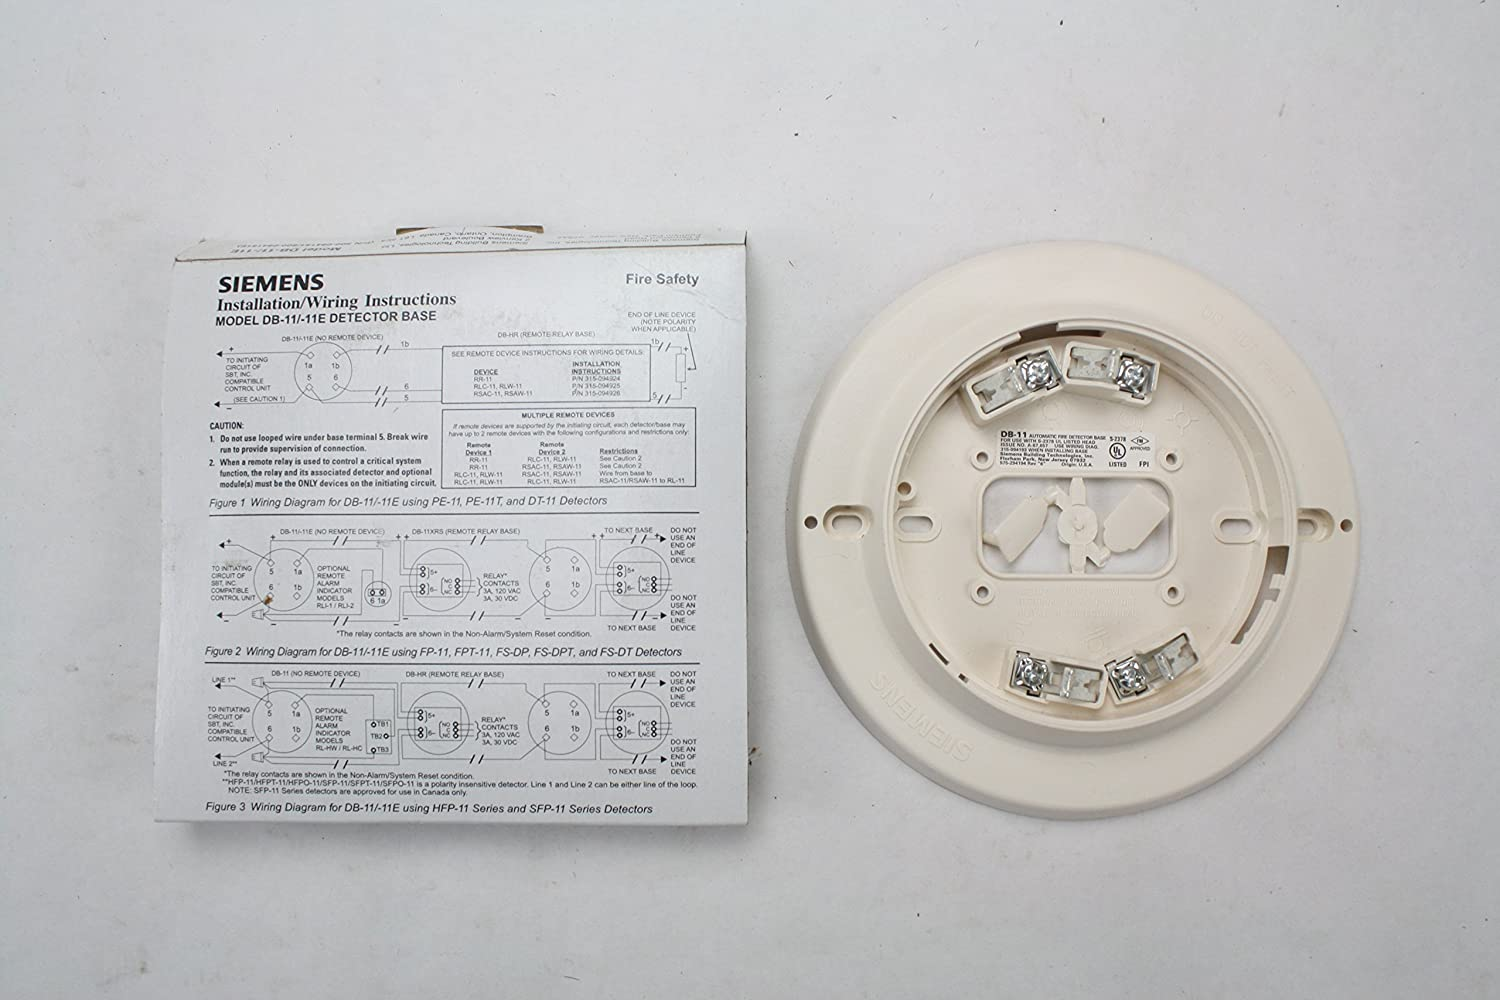 Siemens DB-11 500-094151 Fire Alarm Low Profile Surface Mount Detector Base - - Amazon.com